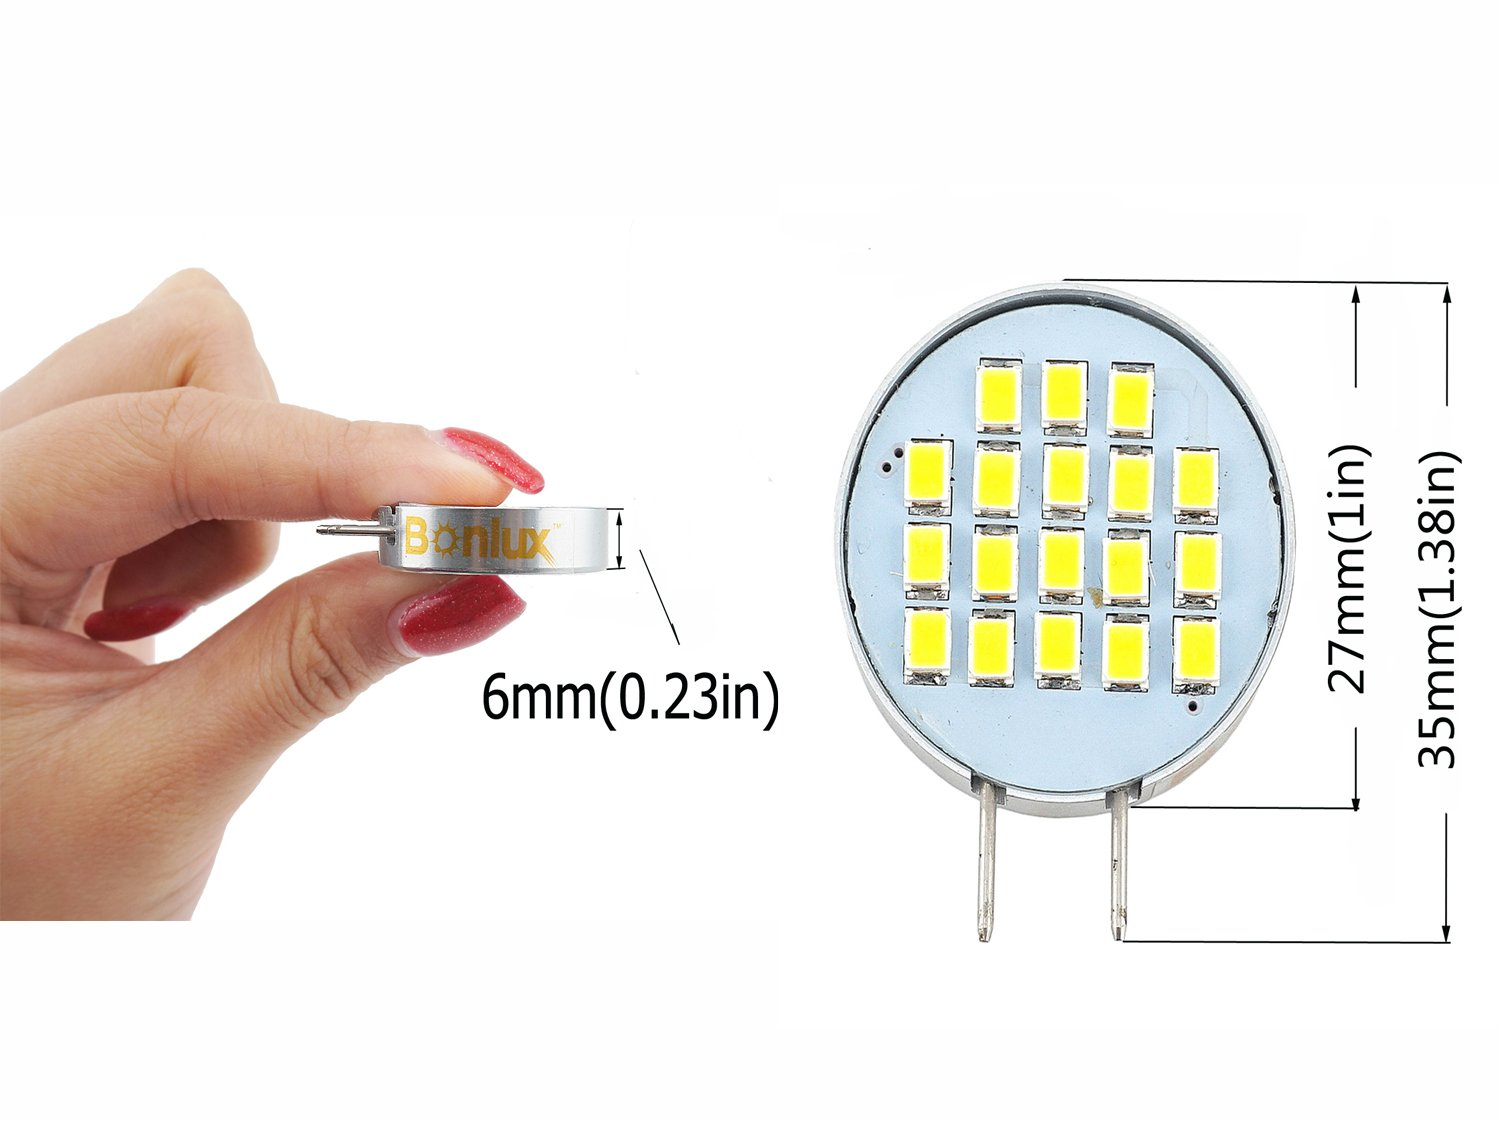 Bonlux dimmable led g8 bi pin base bulb daylight 35 watts 30 bonlux dimmable led g8 bi pin base bulb daylight 35 watts 30 watts halogen replacement under cabinet led light for counter kitchen lighting 4 mozeypictures Gallery